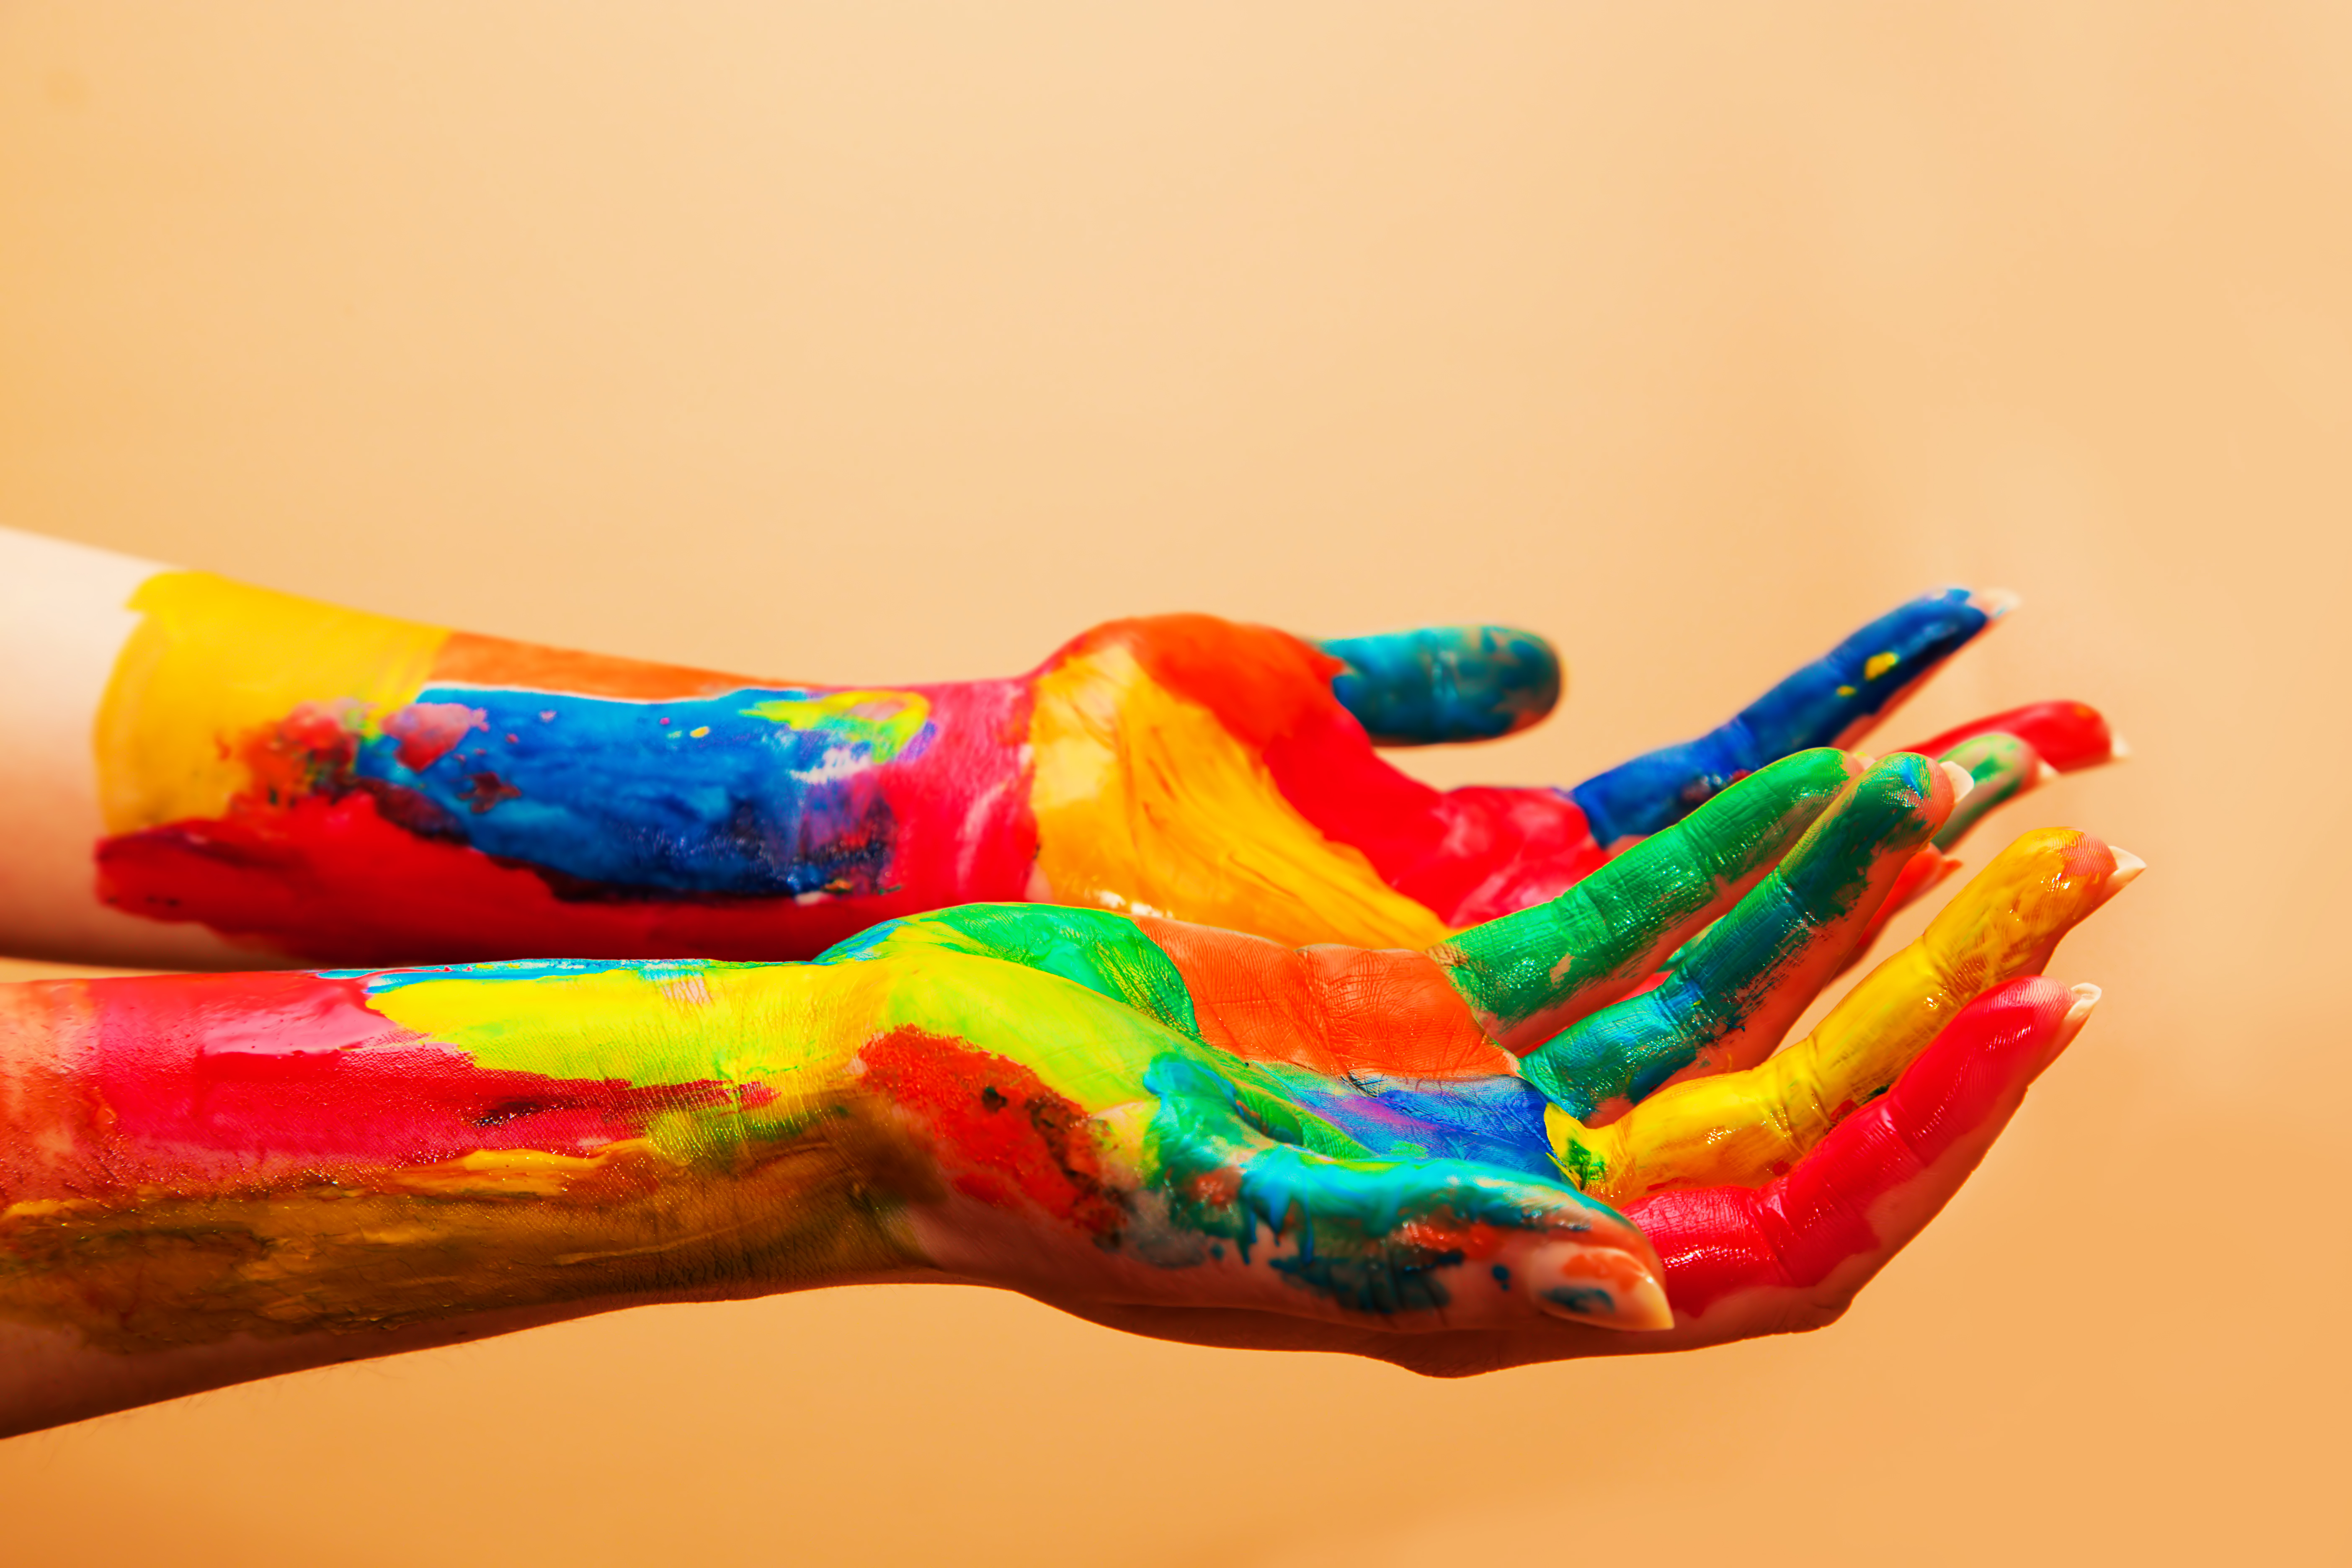 Painted hands, colorful fun. Creative, funny and artistic means happy! Orange background wall